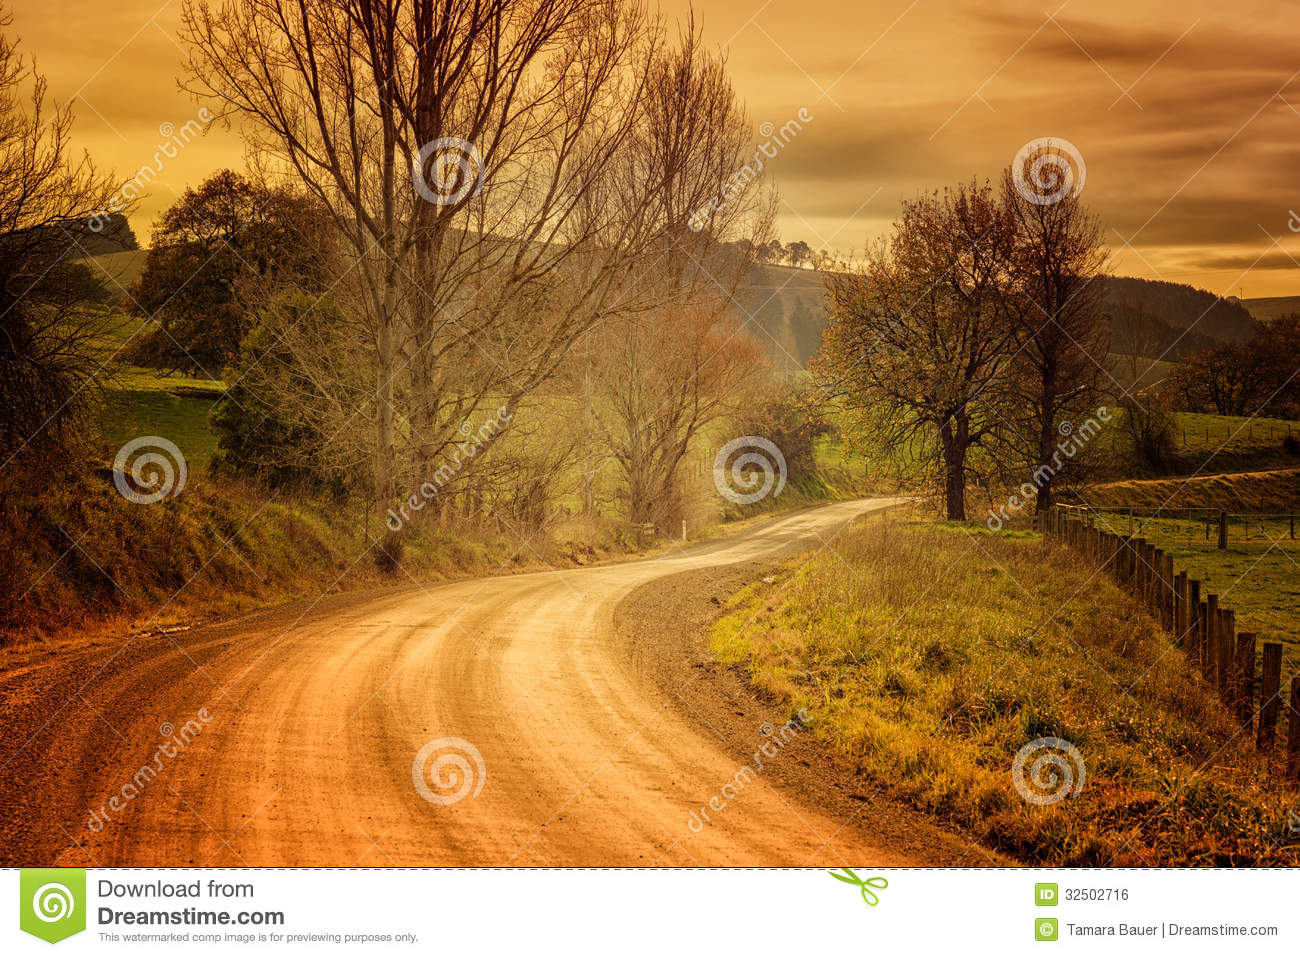 Country road in Australia